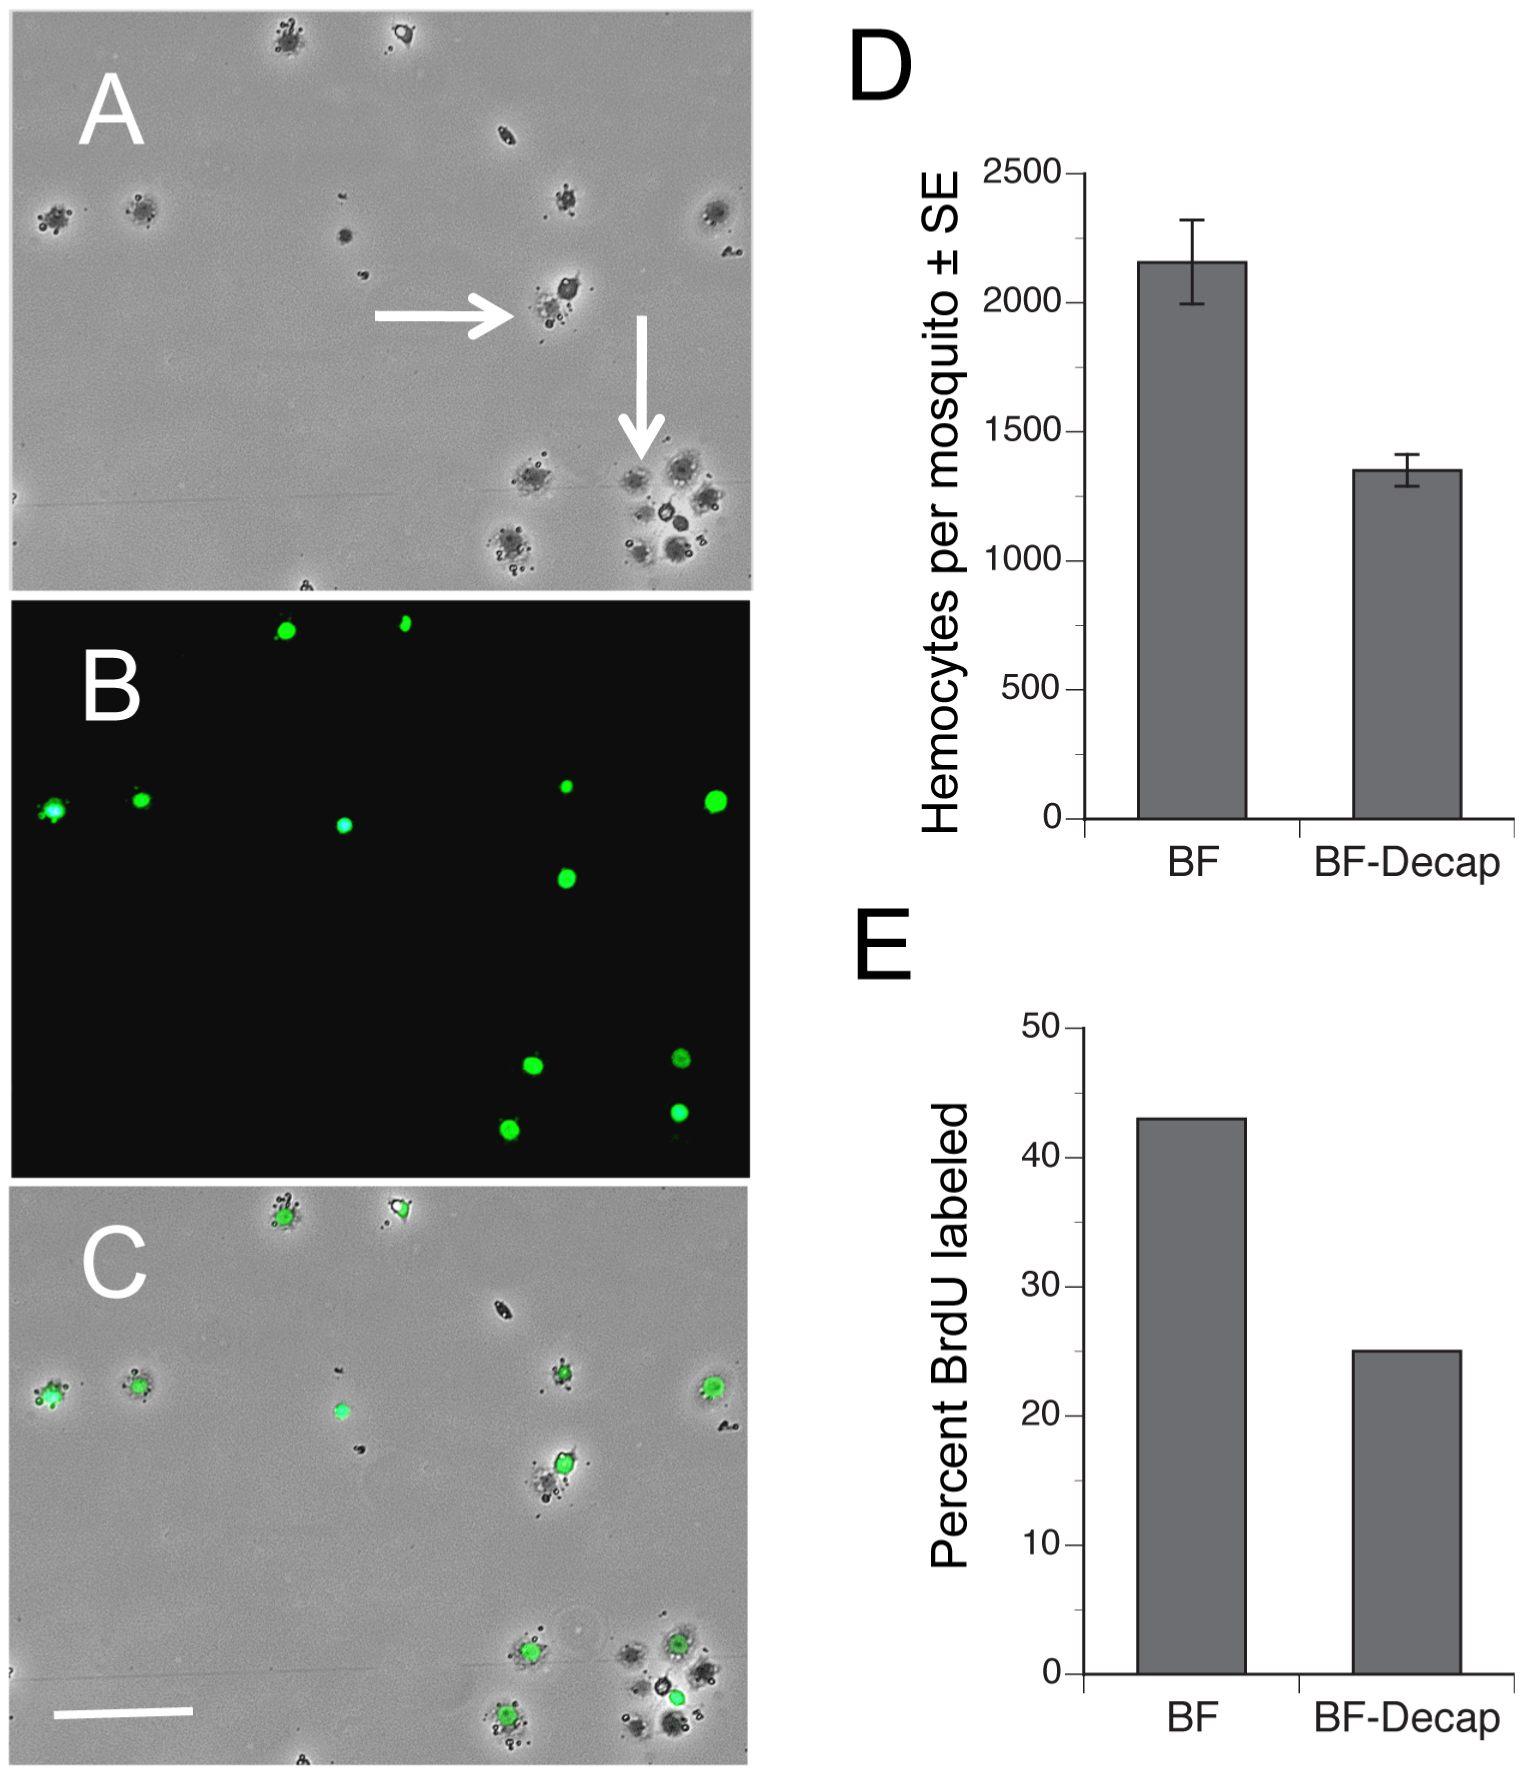 Blood feeding increases the proportion of hemocytes labeled by BrdU.